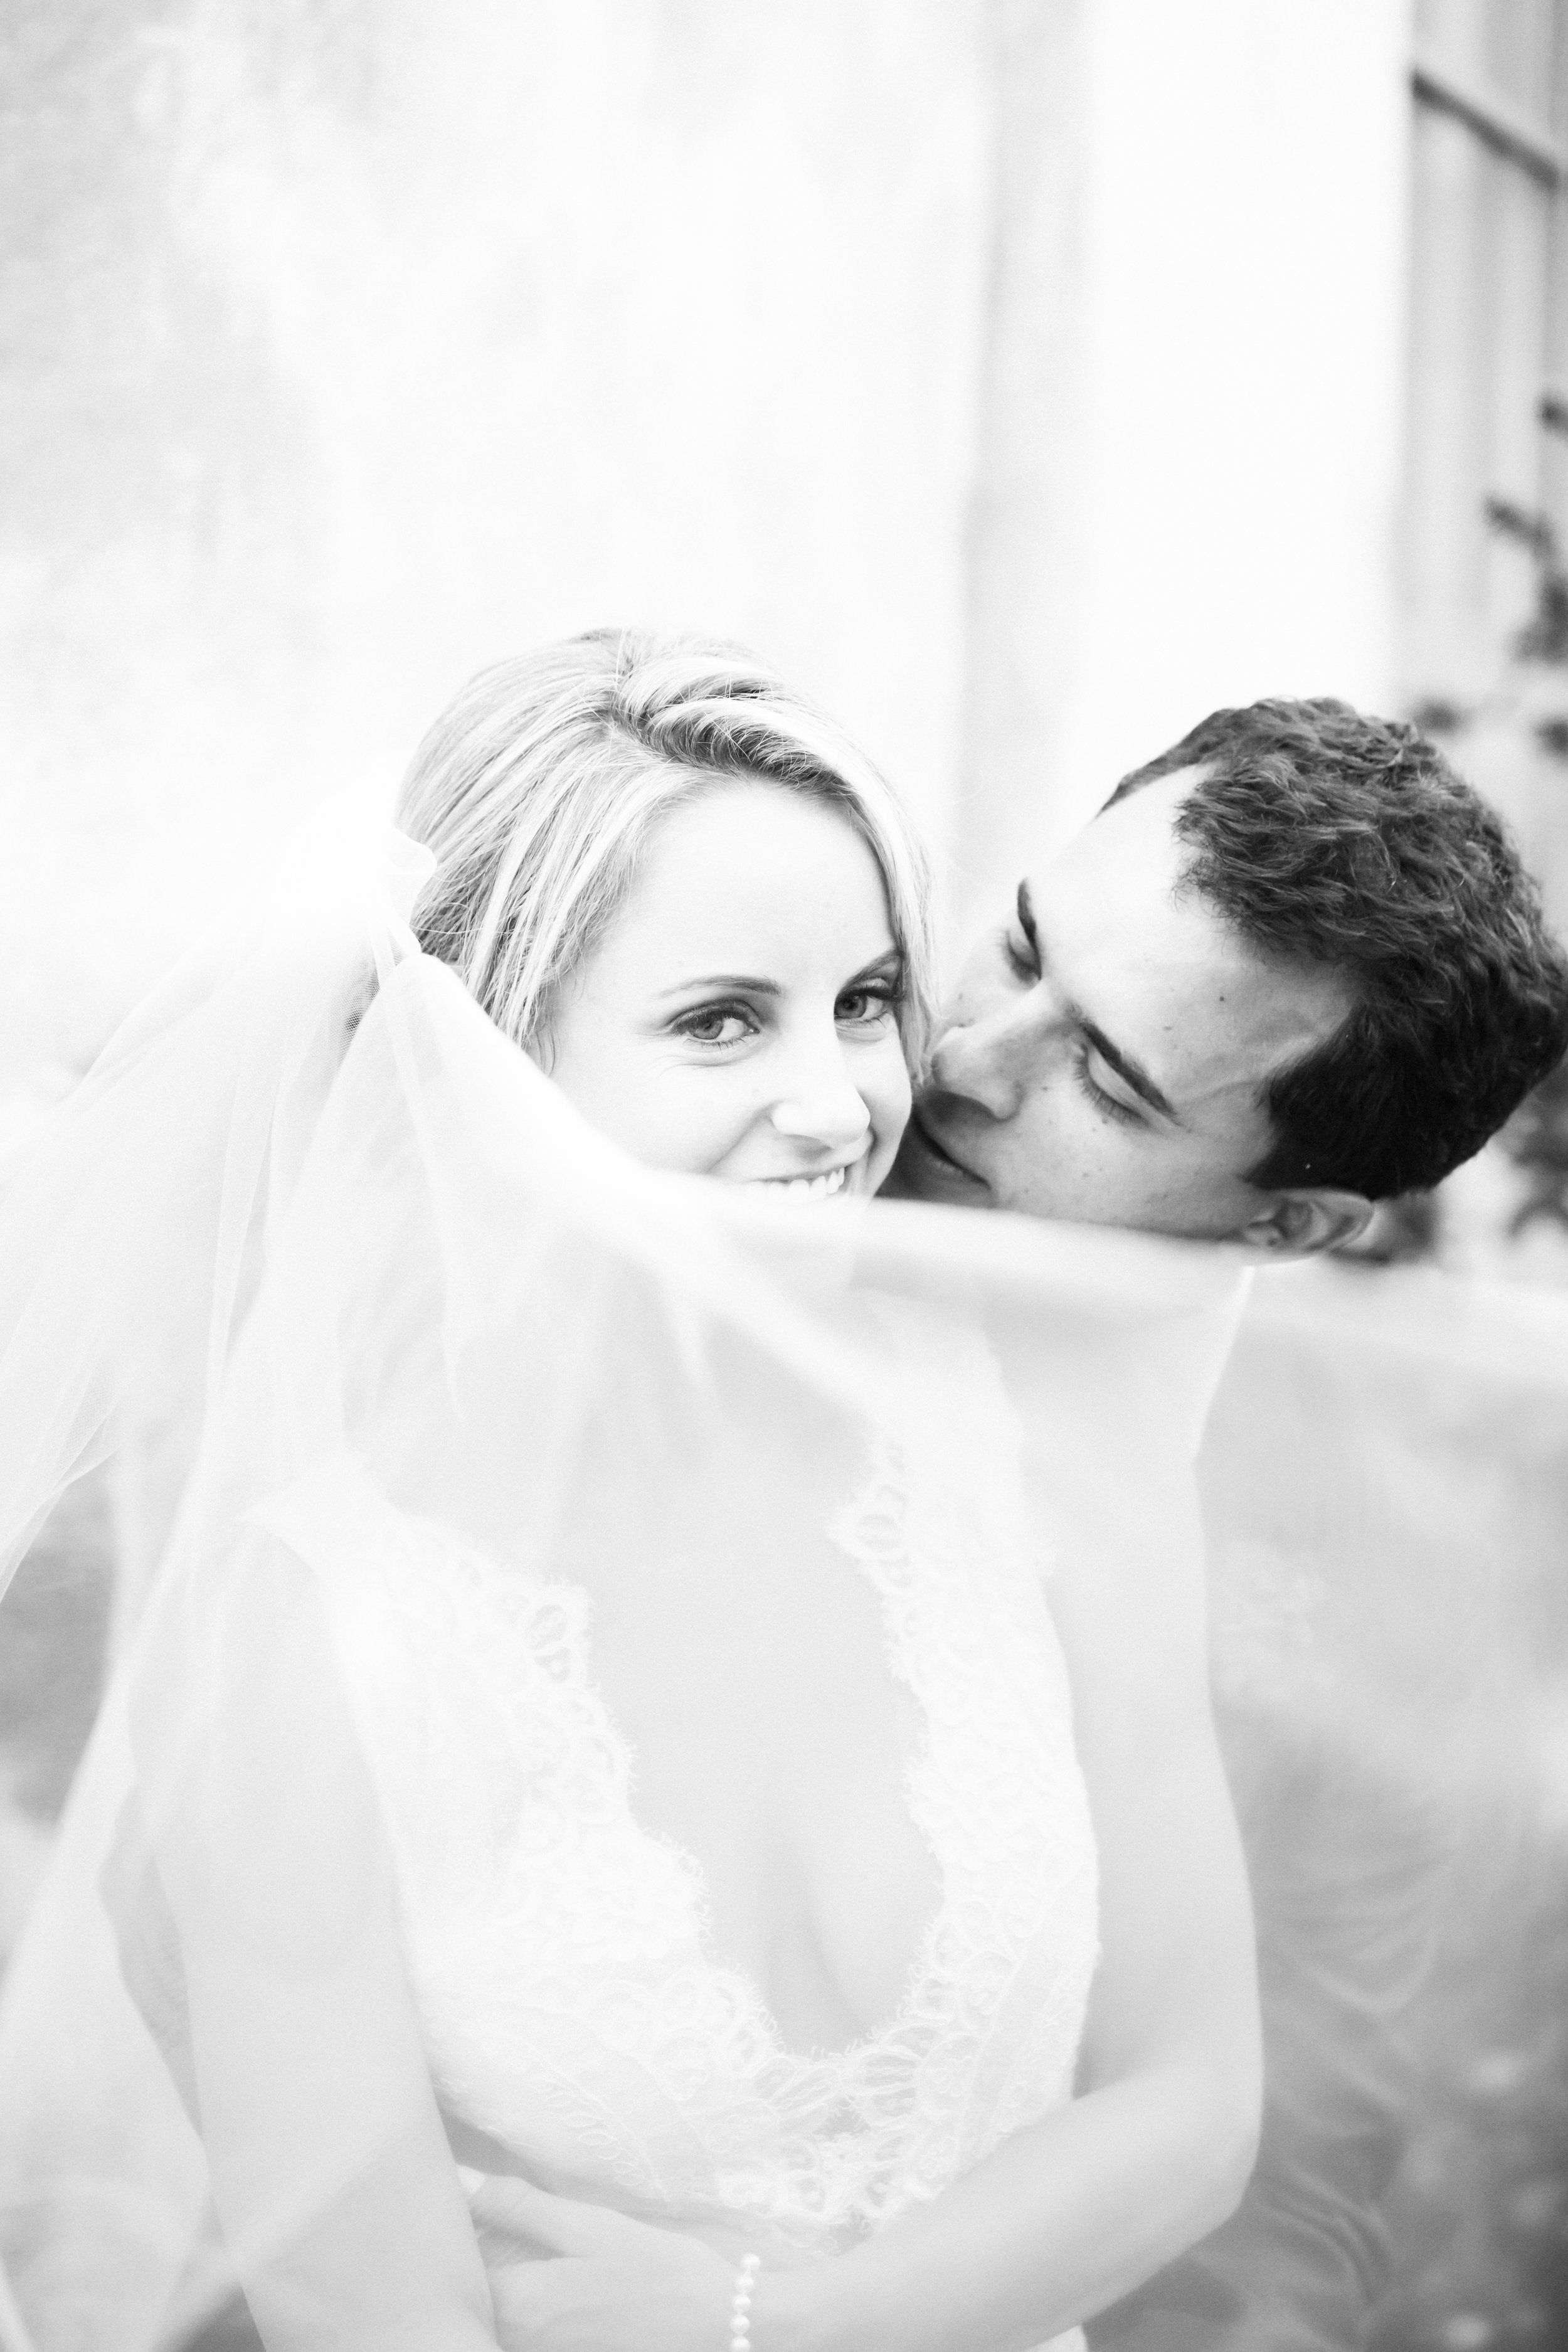 www.santabarbarawedding.com | James and Jess Photography | Santa Barbara Historical | Amazing Day Events | La Fleur du Jour | TEAM Hair & Makeup | Double Take | Bride and Groom Share a Moment